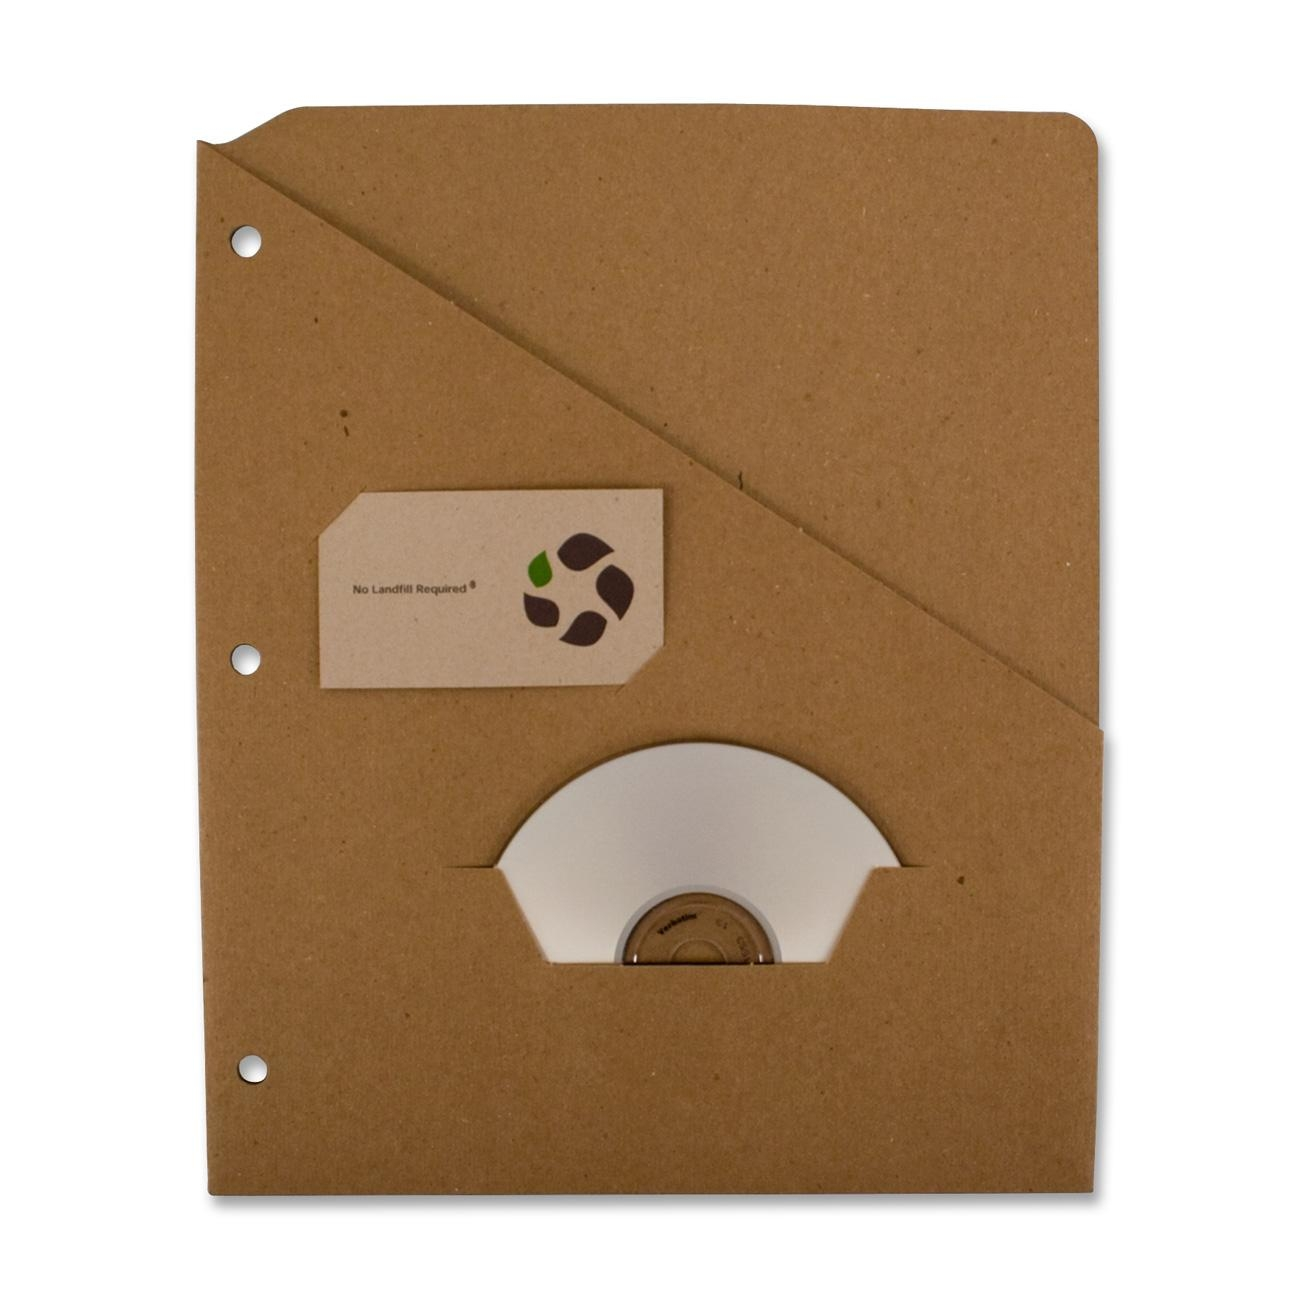 RePouch Recycled Binder Insert with Holes